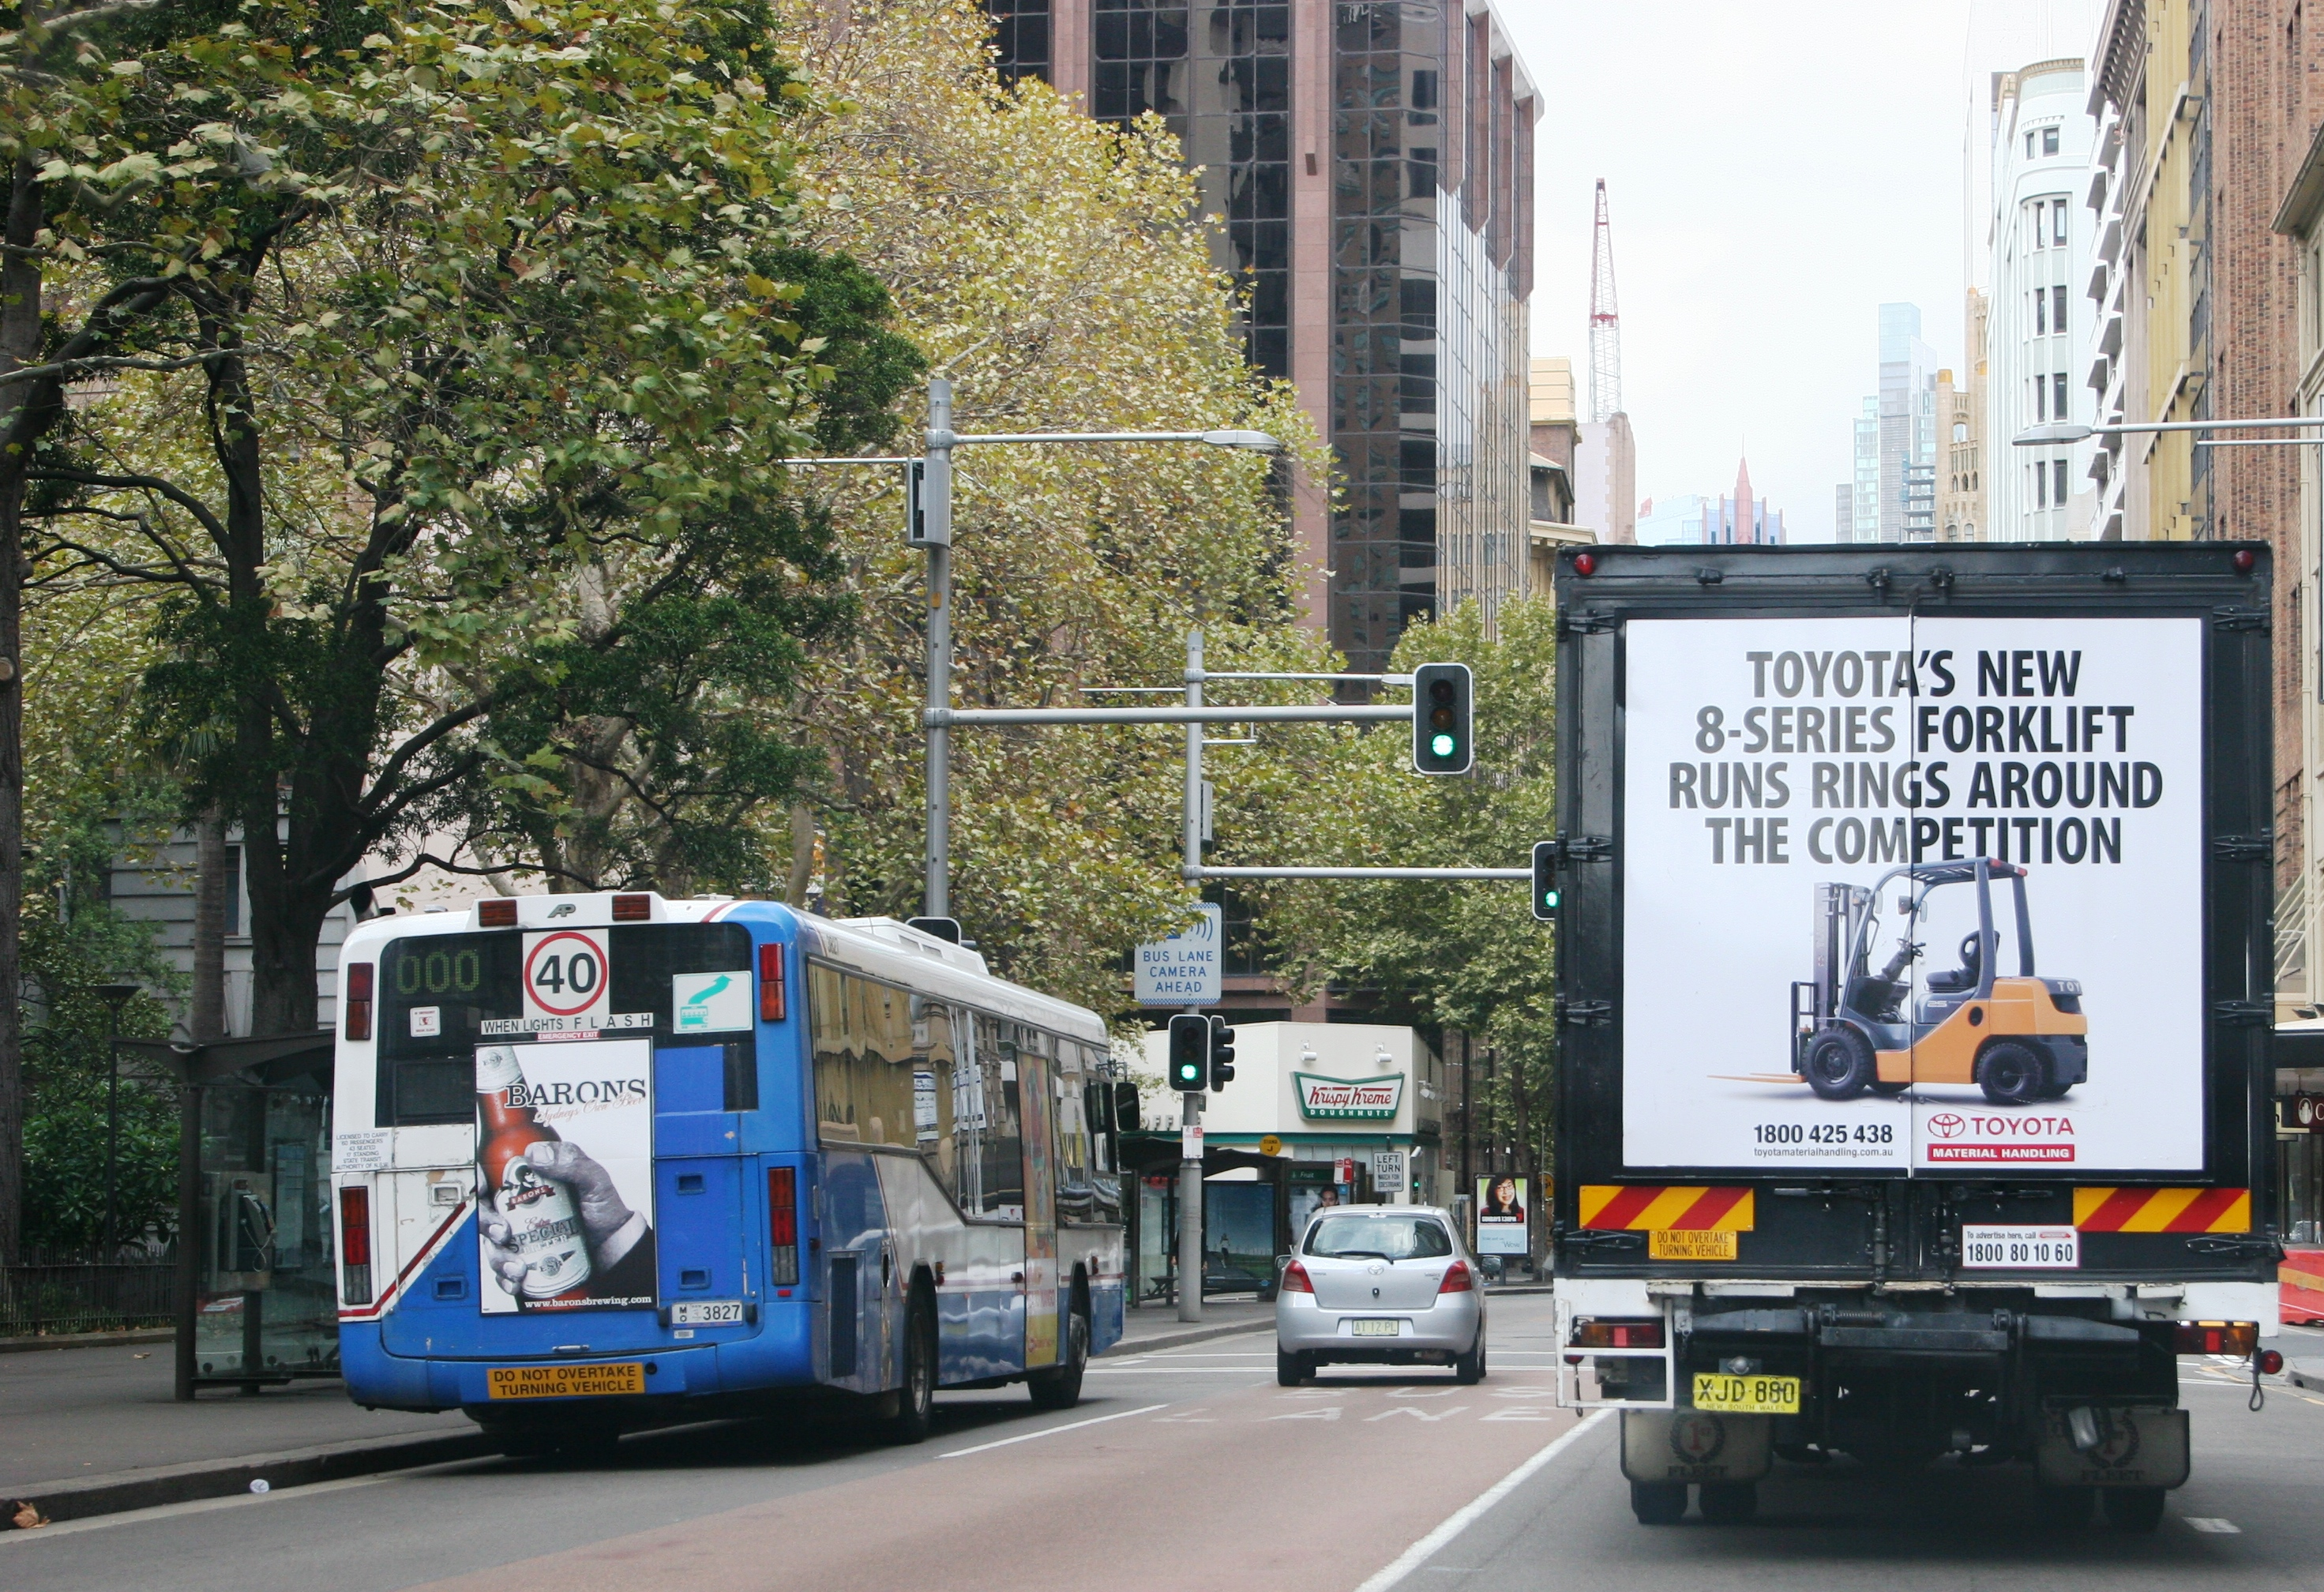 Truck advertising. TMHA Toyota Material Handling Australia TruckBack on First Fleet rigid. Frame. 8 series forklift Runs Rings Around the Competition campaign. York Street Sydney southbound. Adjacent to a bus back.